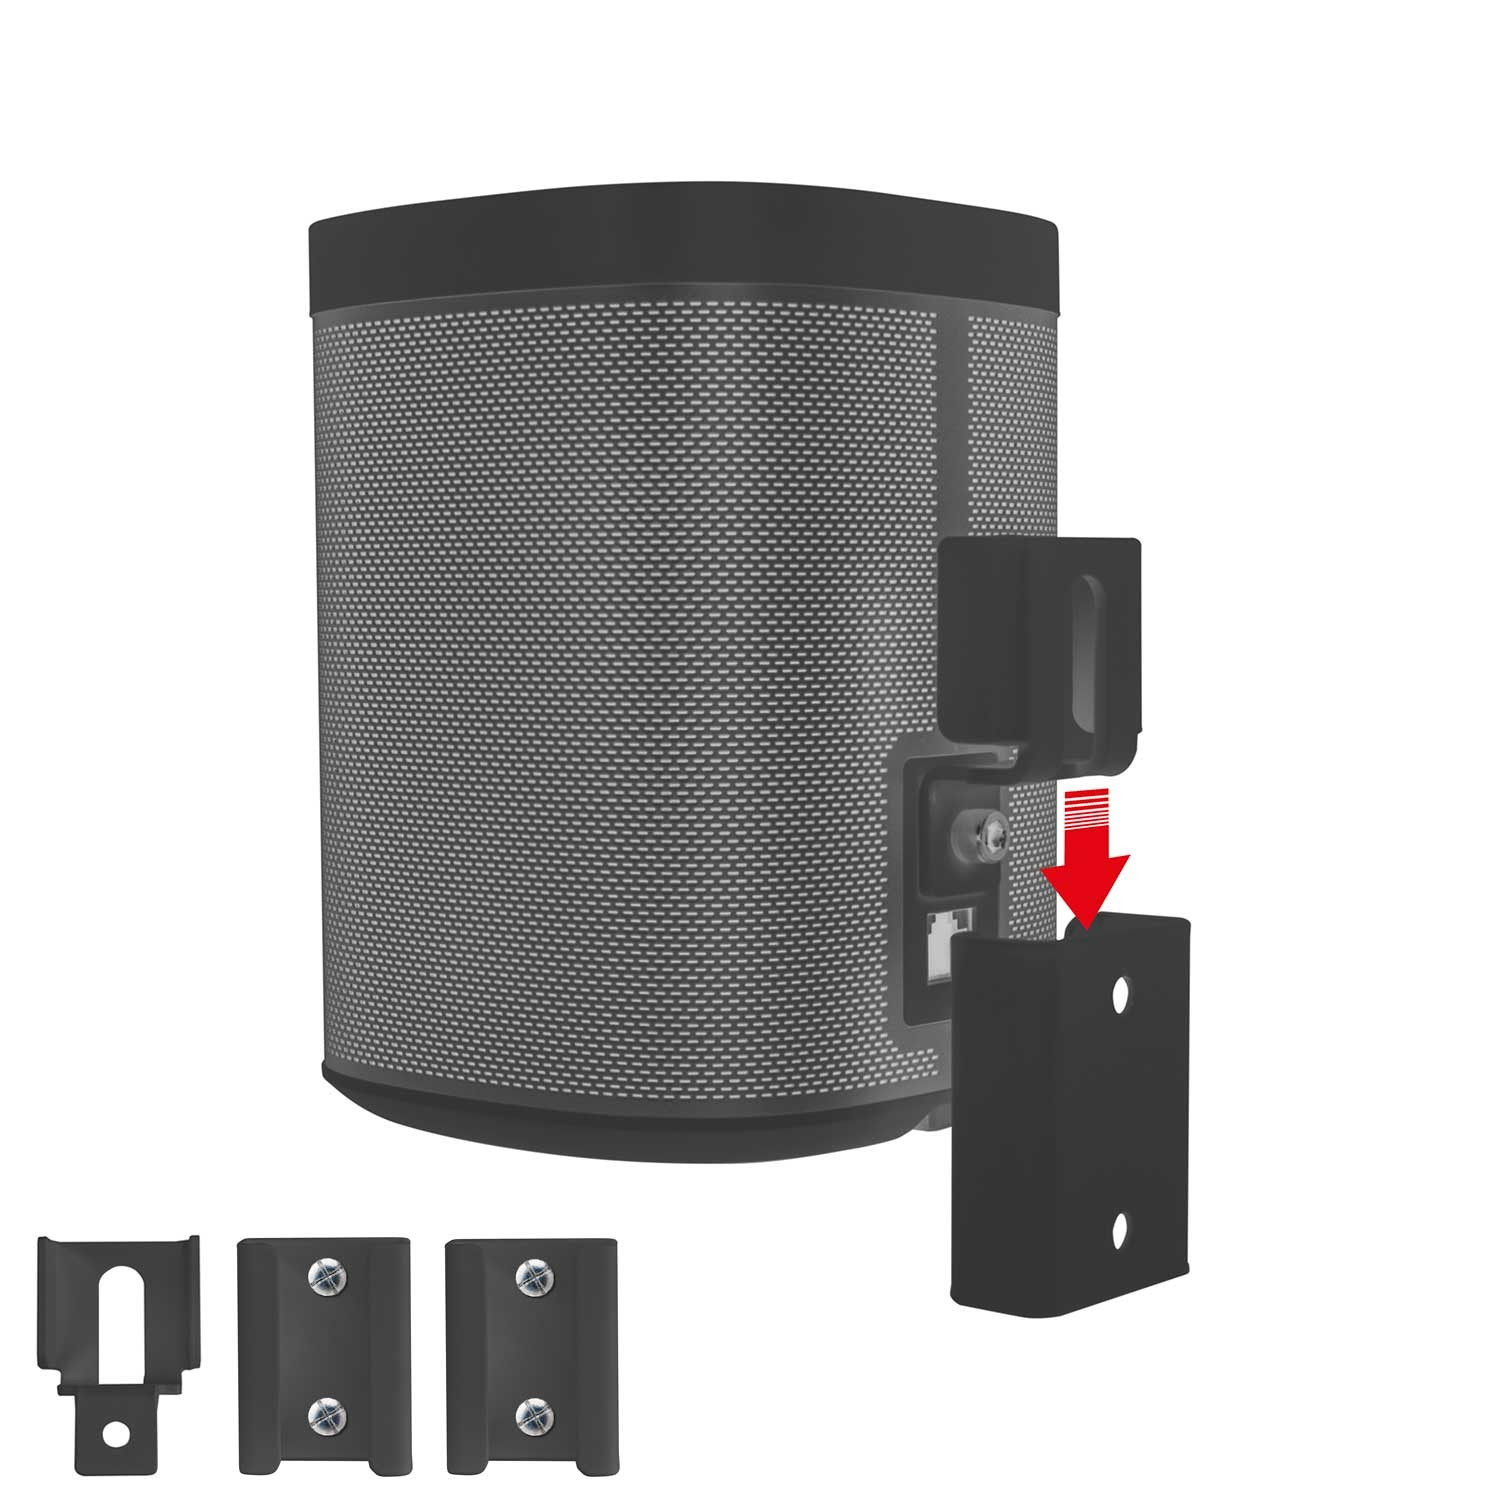 Vebos Portable Wall Mount Sonos Play 1 Black The